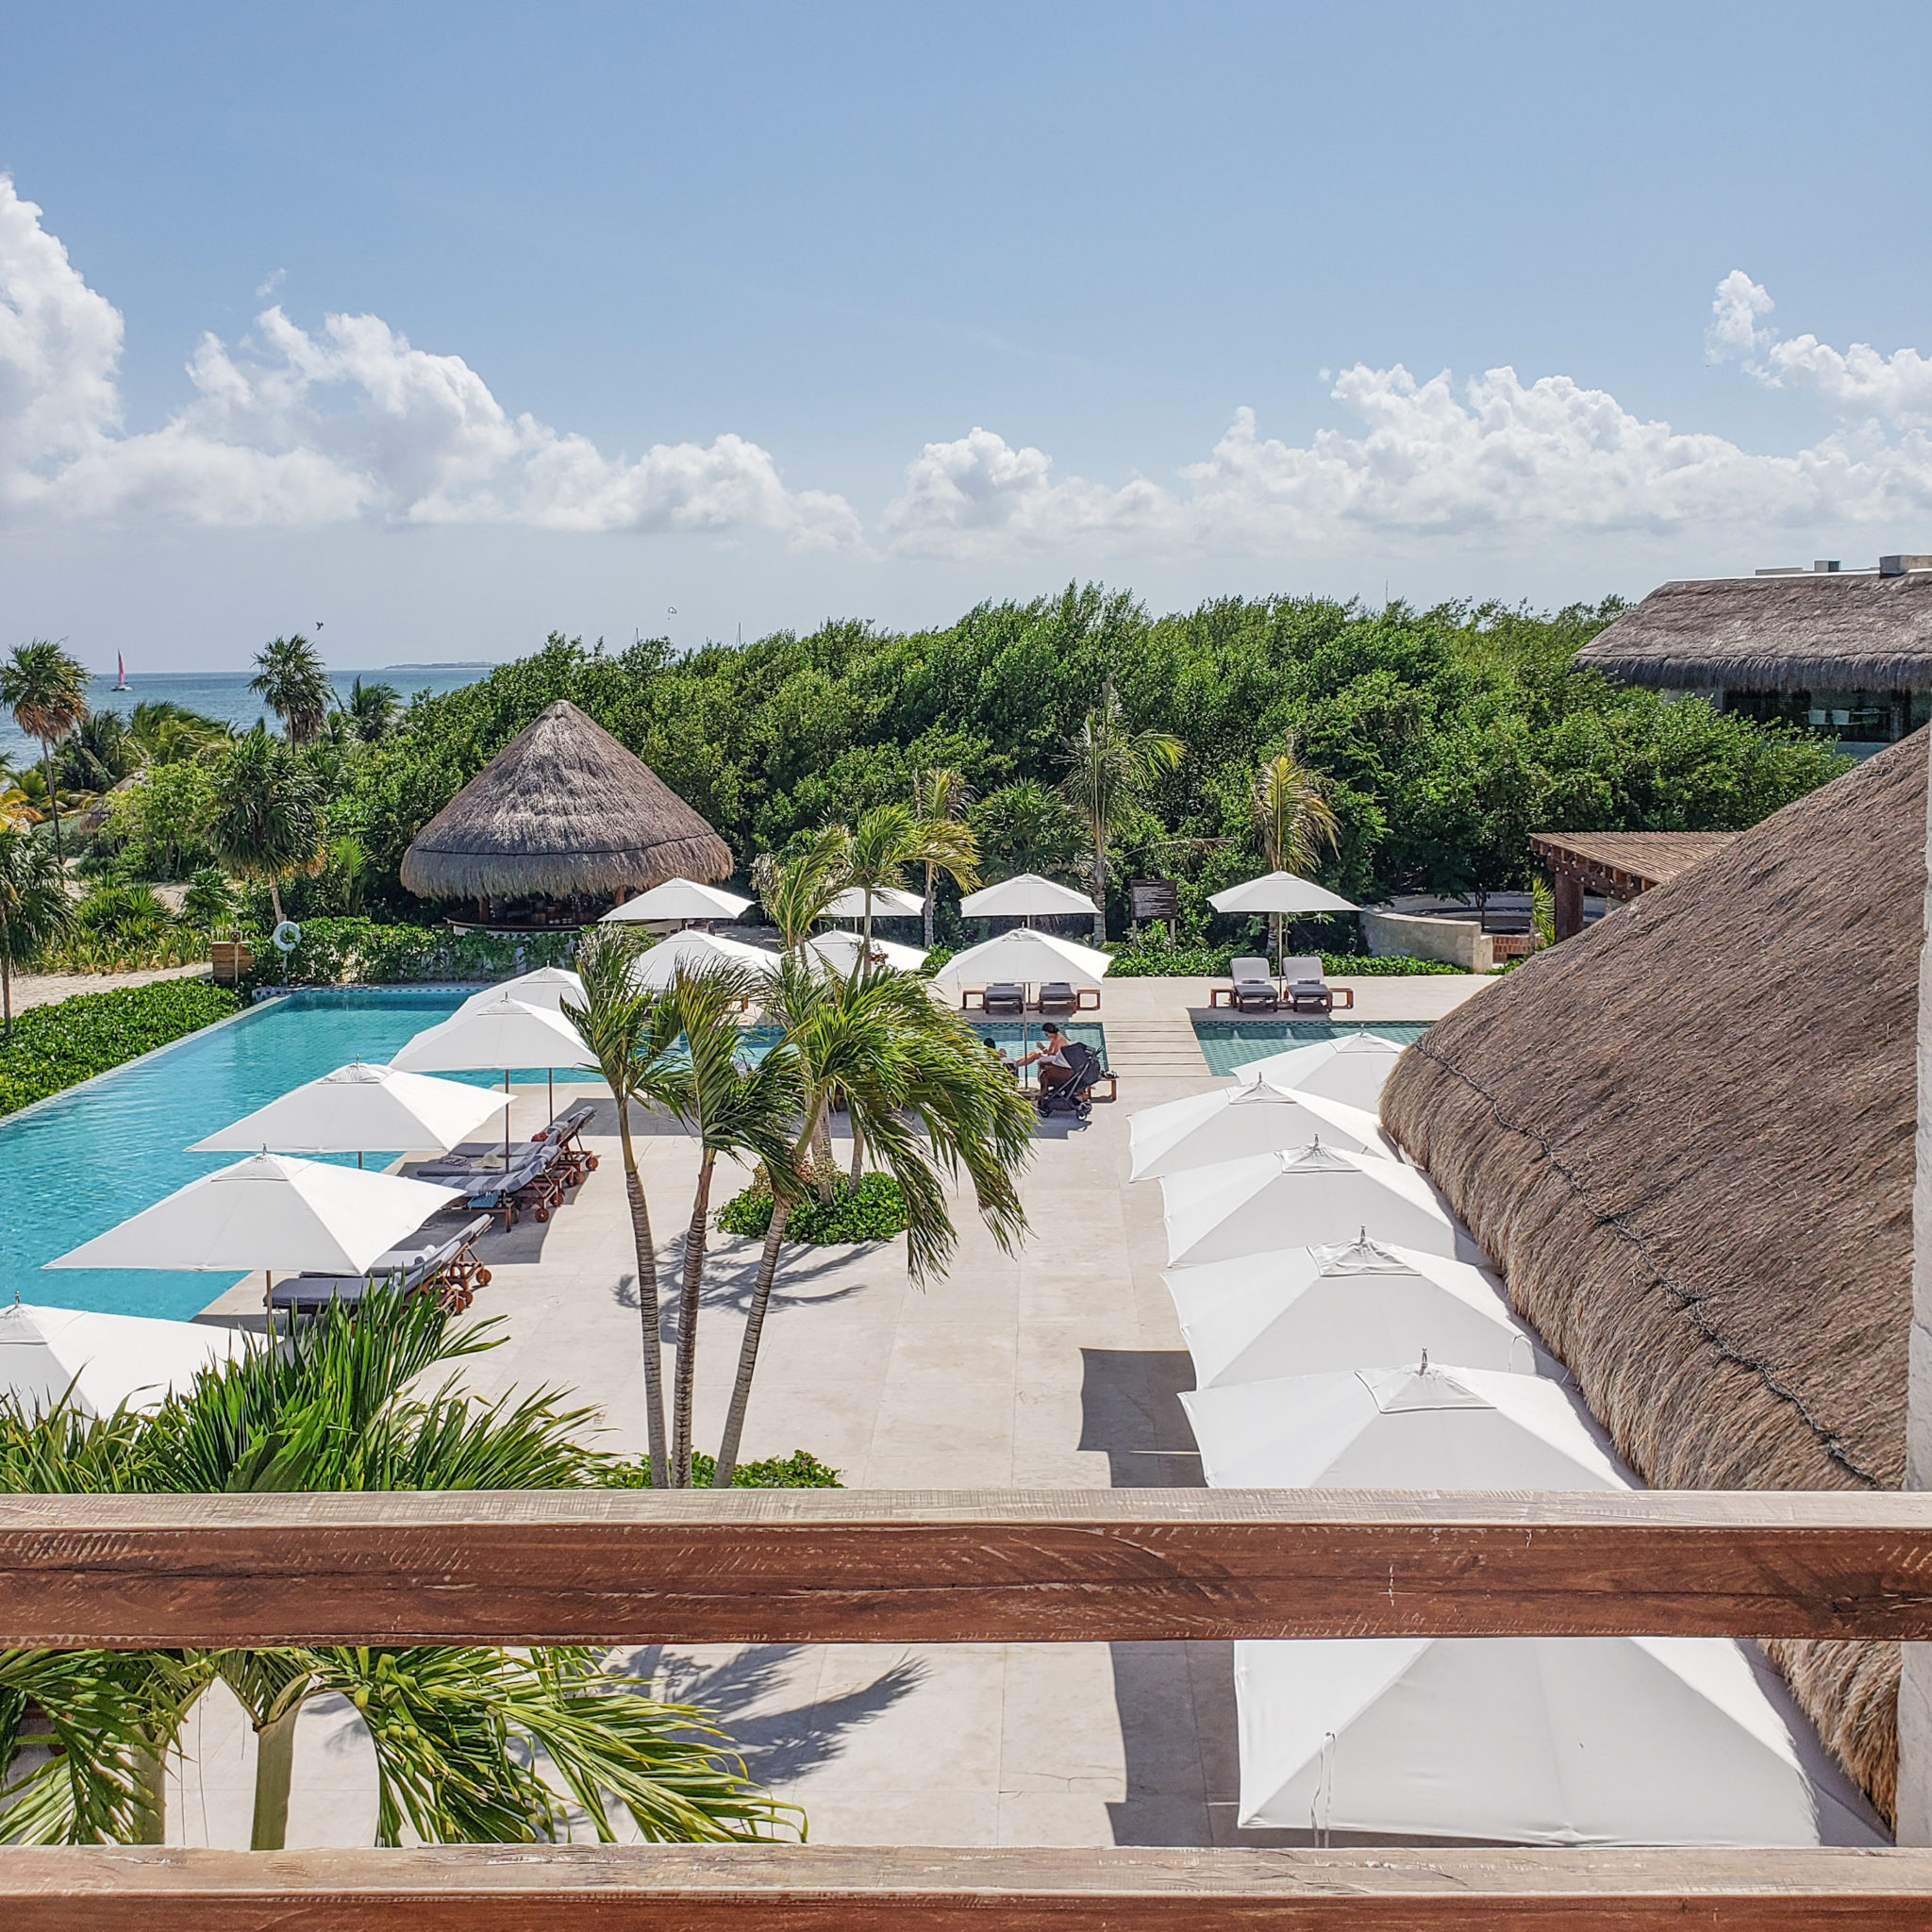 Chable Maroma Resort - Quintana Roo - Playa Del Carmen - Playa Maroma - Poolside View